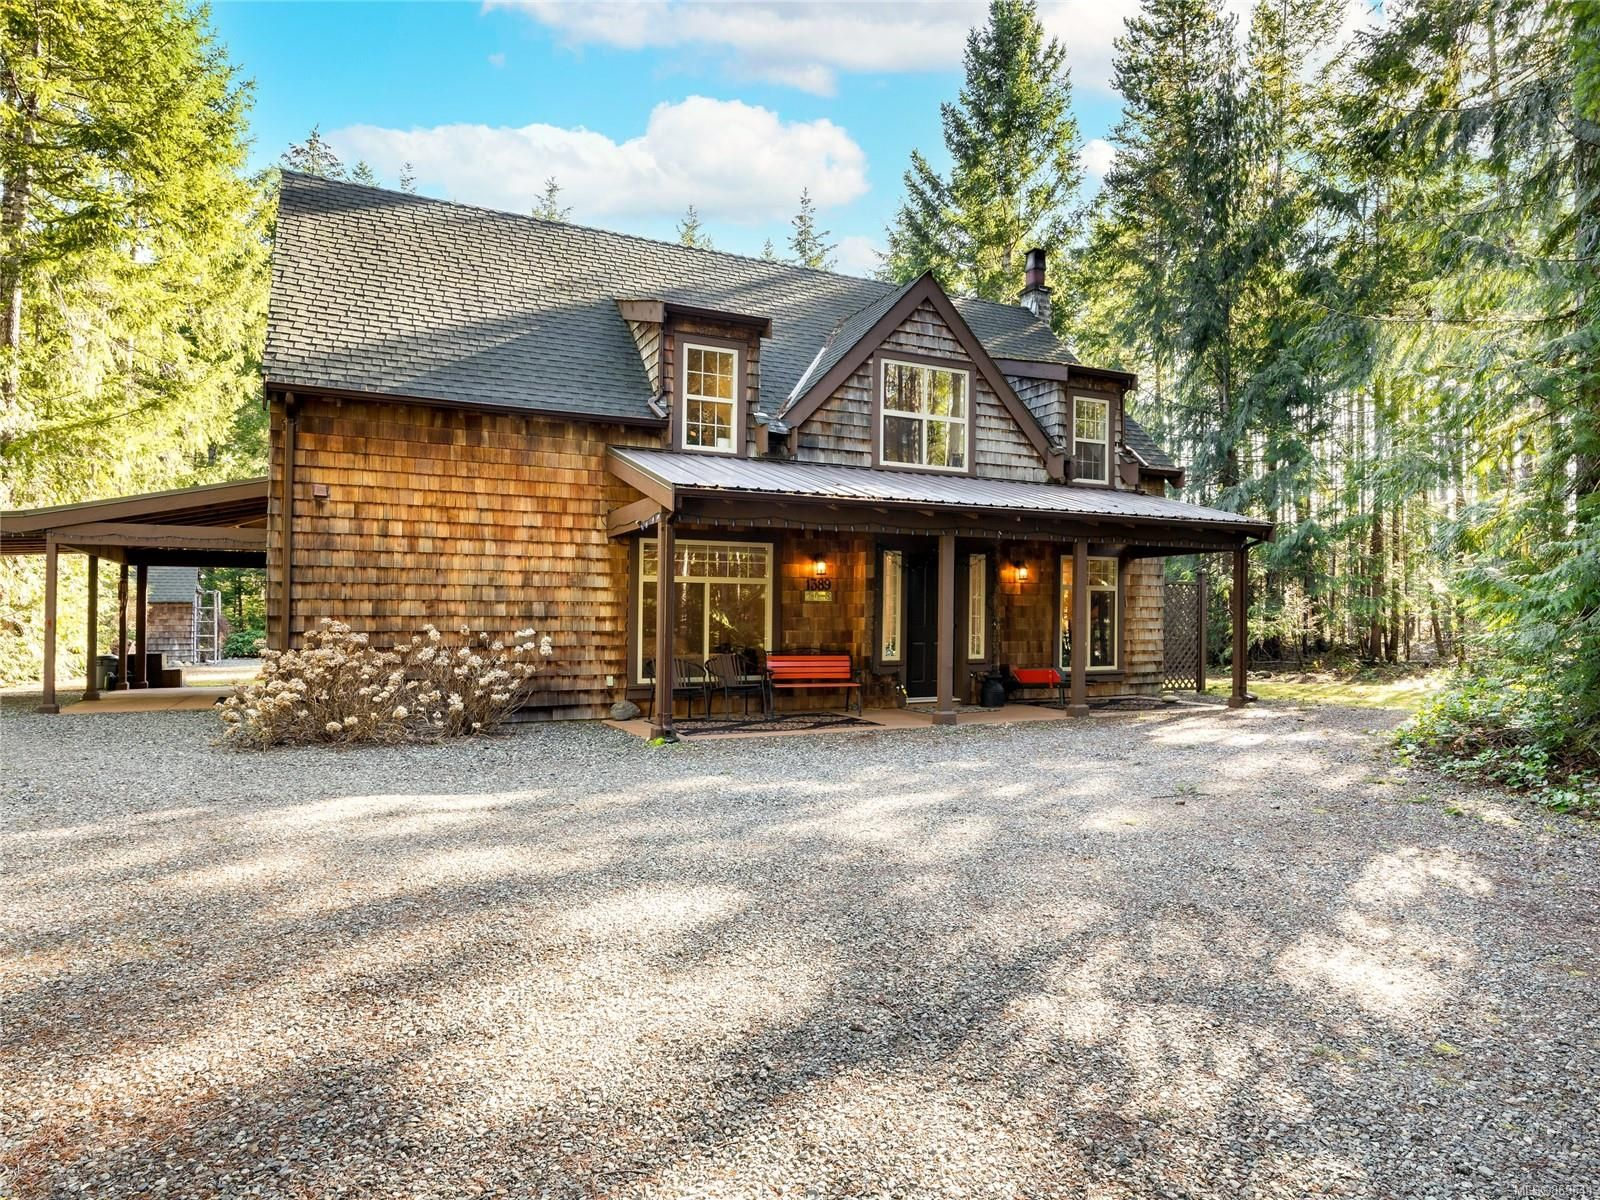 Main Photo: 1389 Meadowood Way in : PQ Qualicum North House for sale (Parksville/Qualicum)  : MLS®# 869641